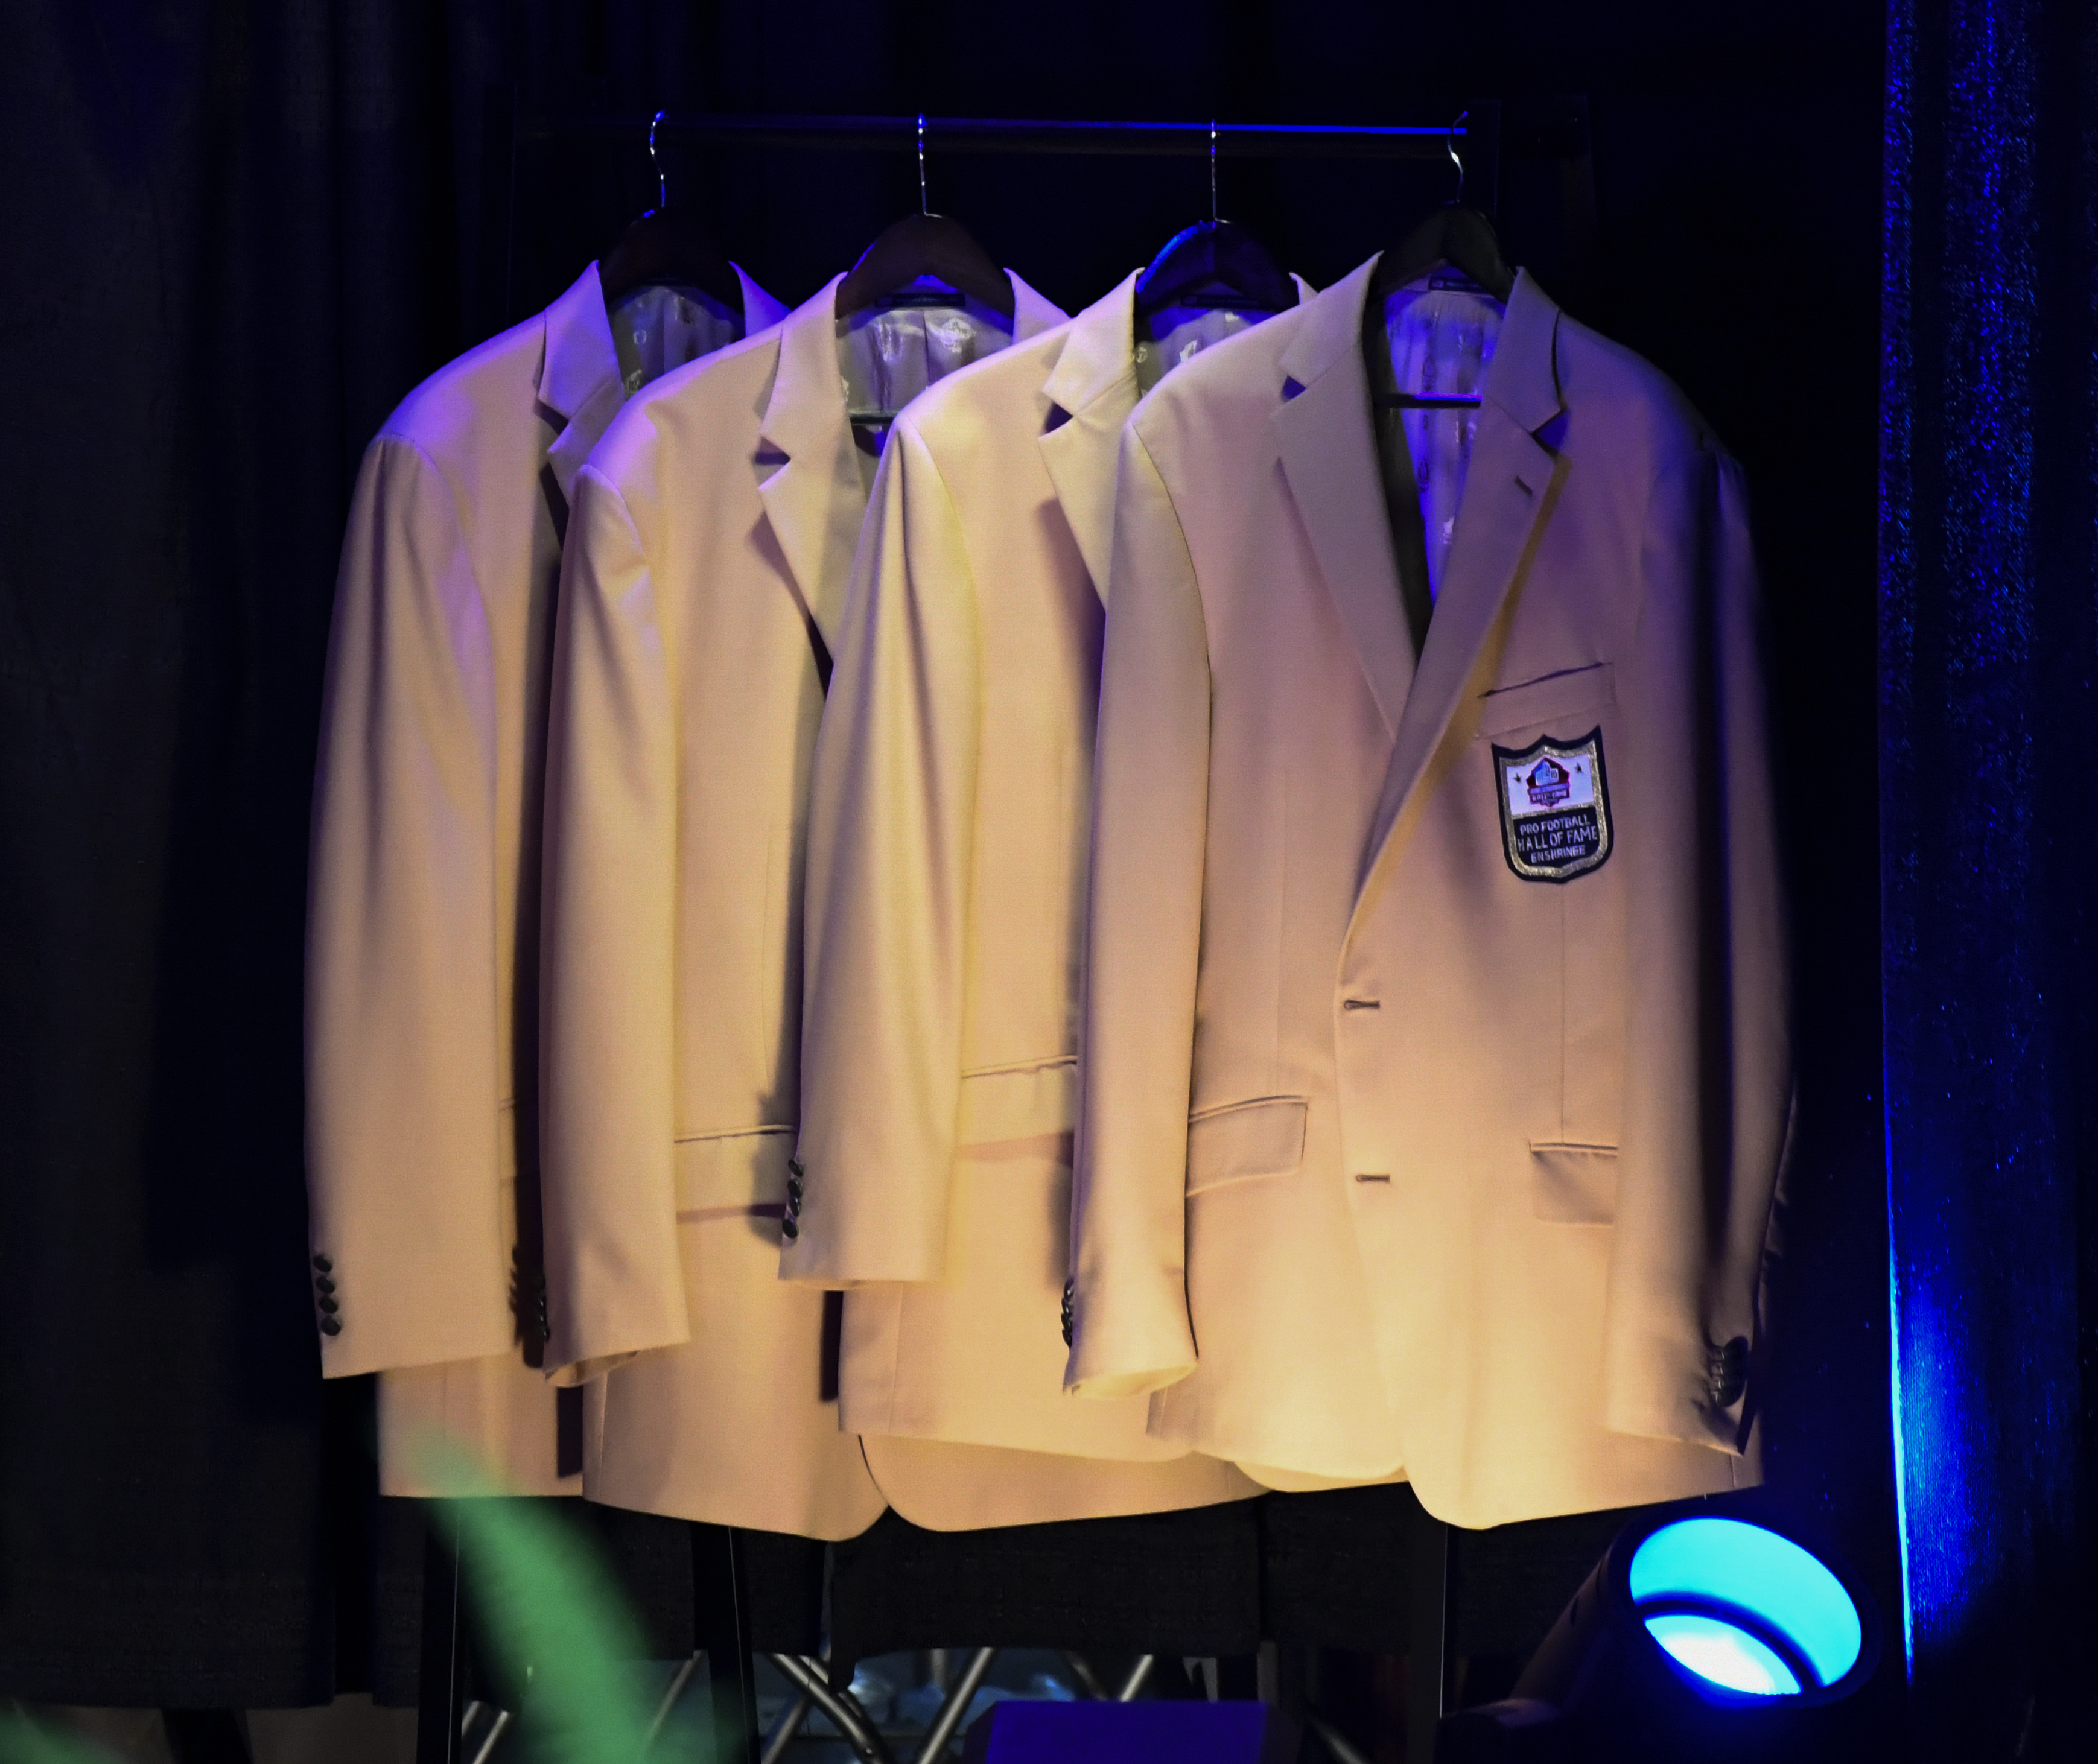 Pro Football Hall of Fame enshrines' Gold Jackets hang in the background awaiting ownership on August 4, 2017 in Canton, Ohio.